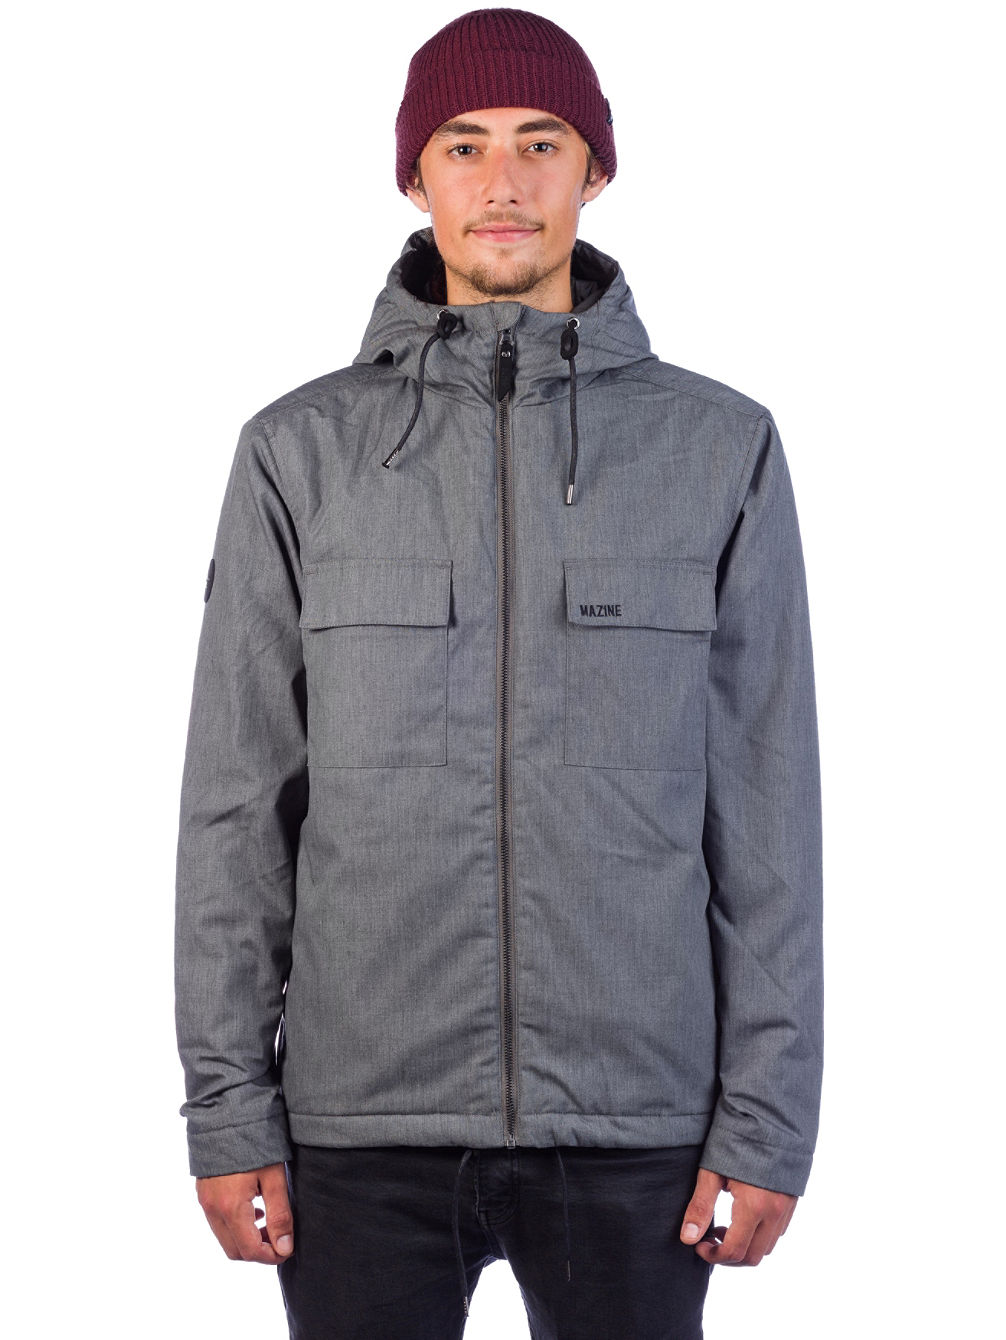 Stainfield Jacket